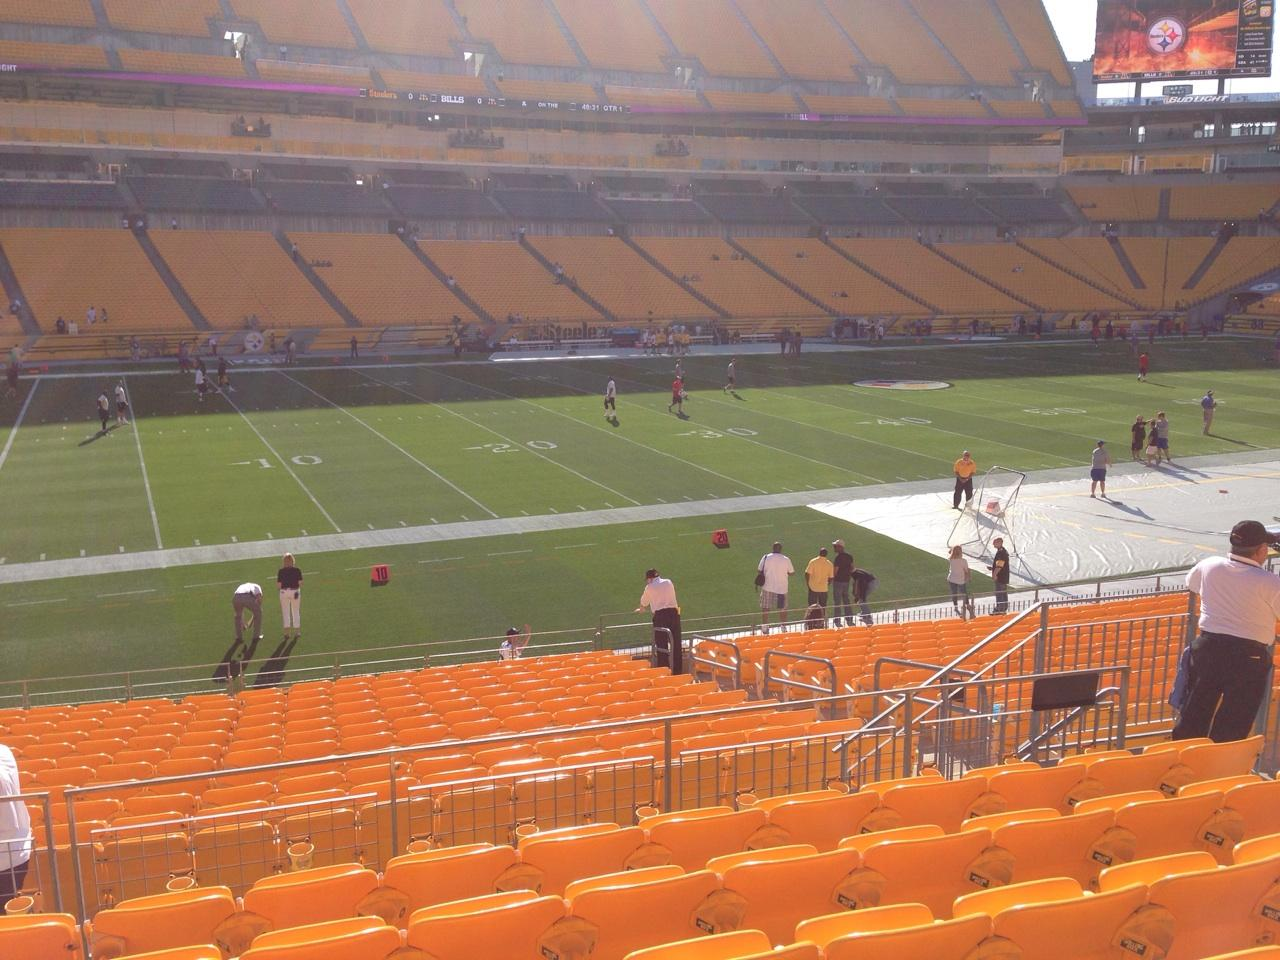 Pictures of heinz field pittsburgh pa Cached